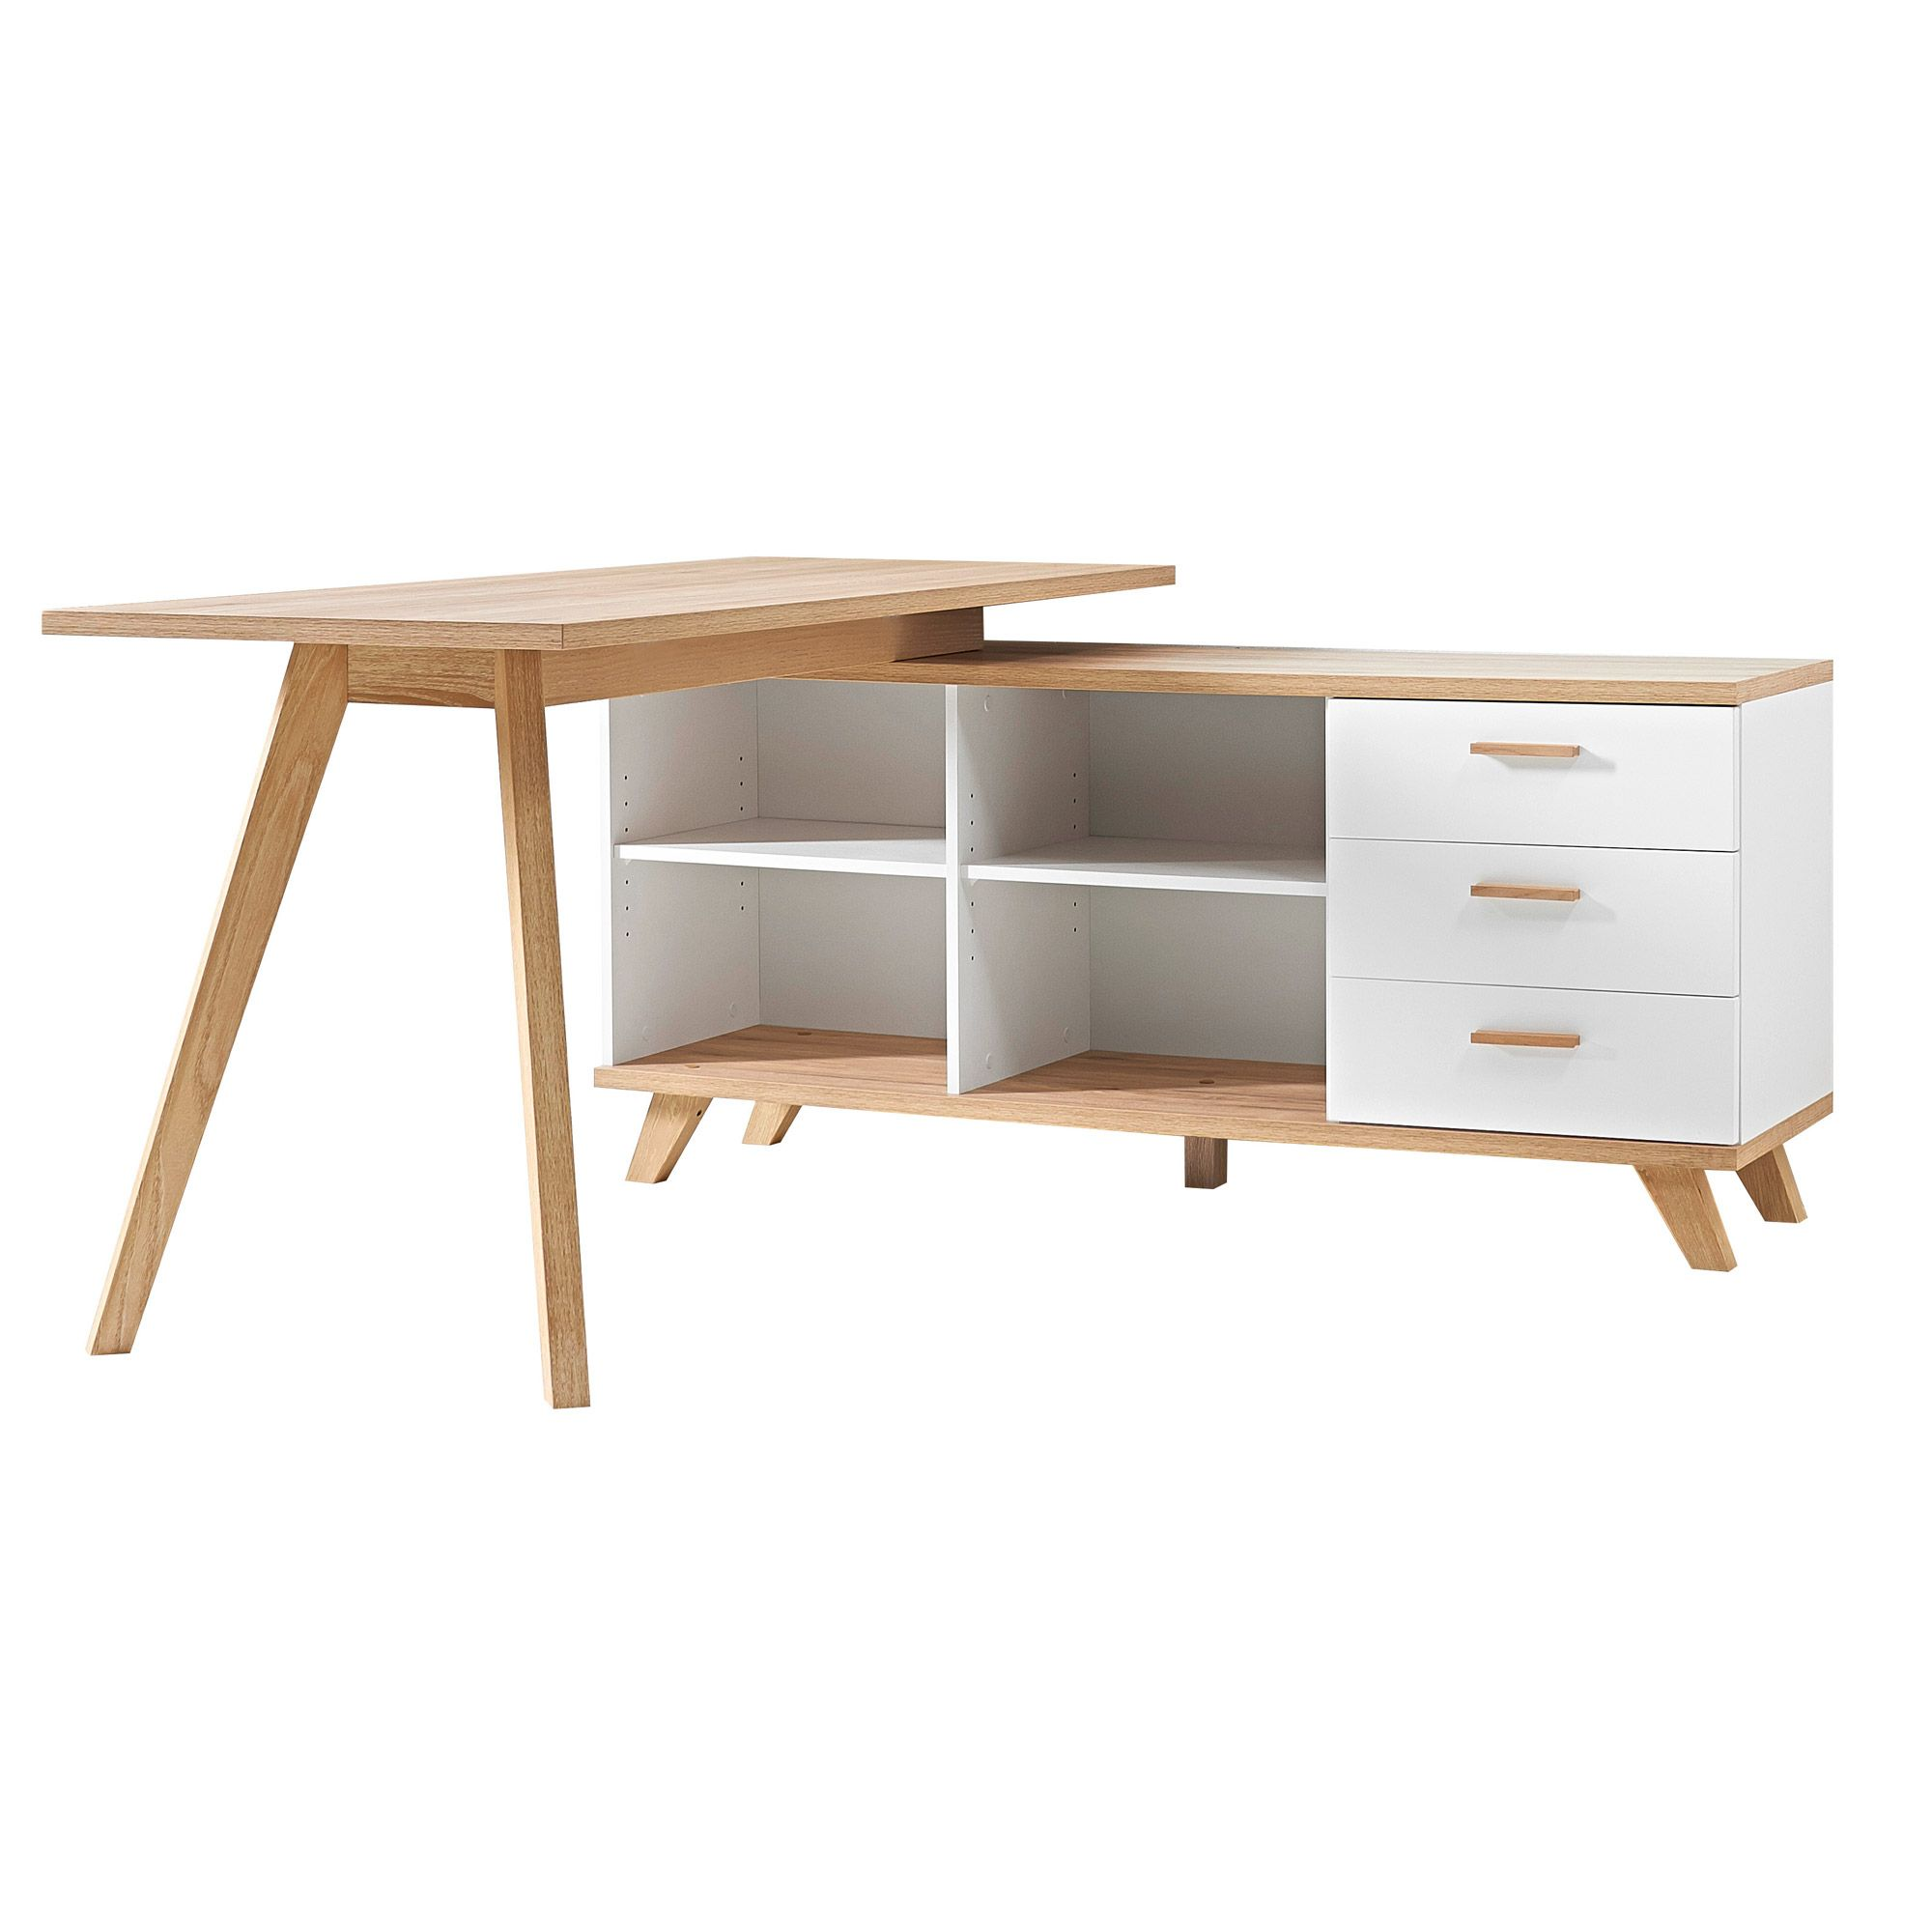 bureau d 39 angle en bois avec 4 niches 3 tiroirs oslo bureau scandinave atelier bureau. Black Bedroom Furniture Sets. Home Design Ideas